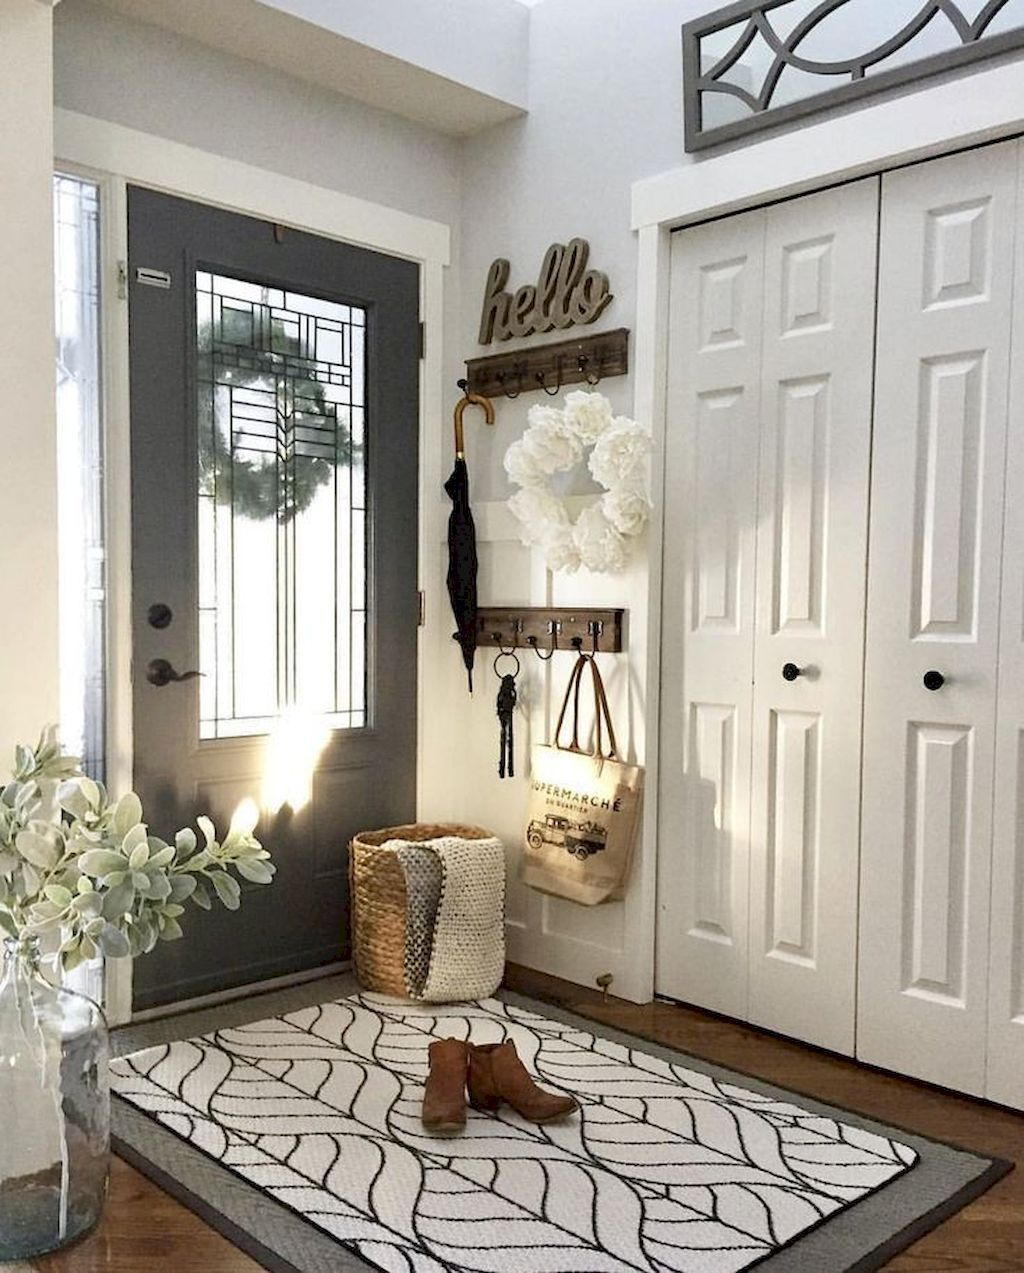 Modern farmhouse foyer makeover  new coat of paint creates an amazing transformation in decorating also rh pinterest